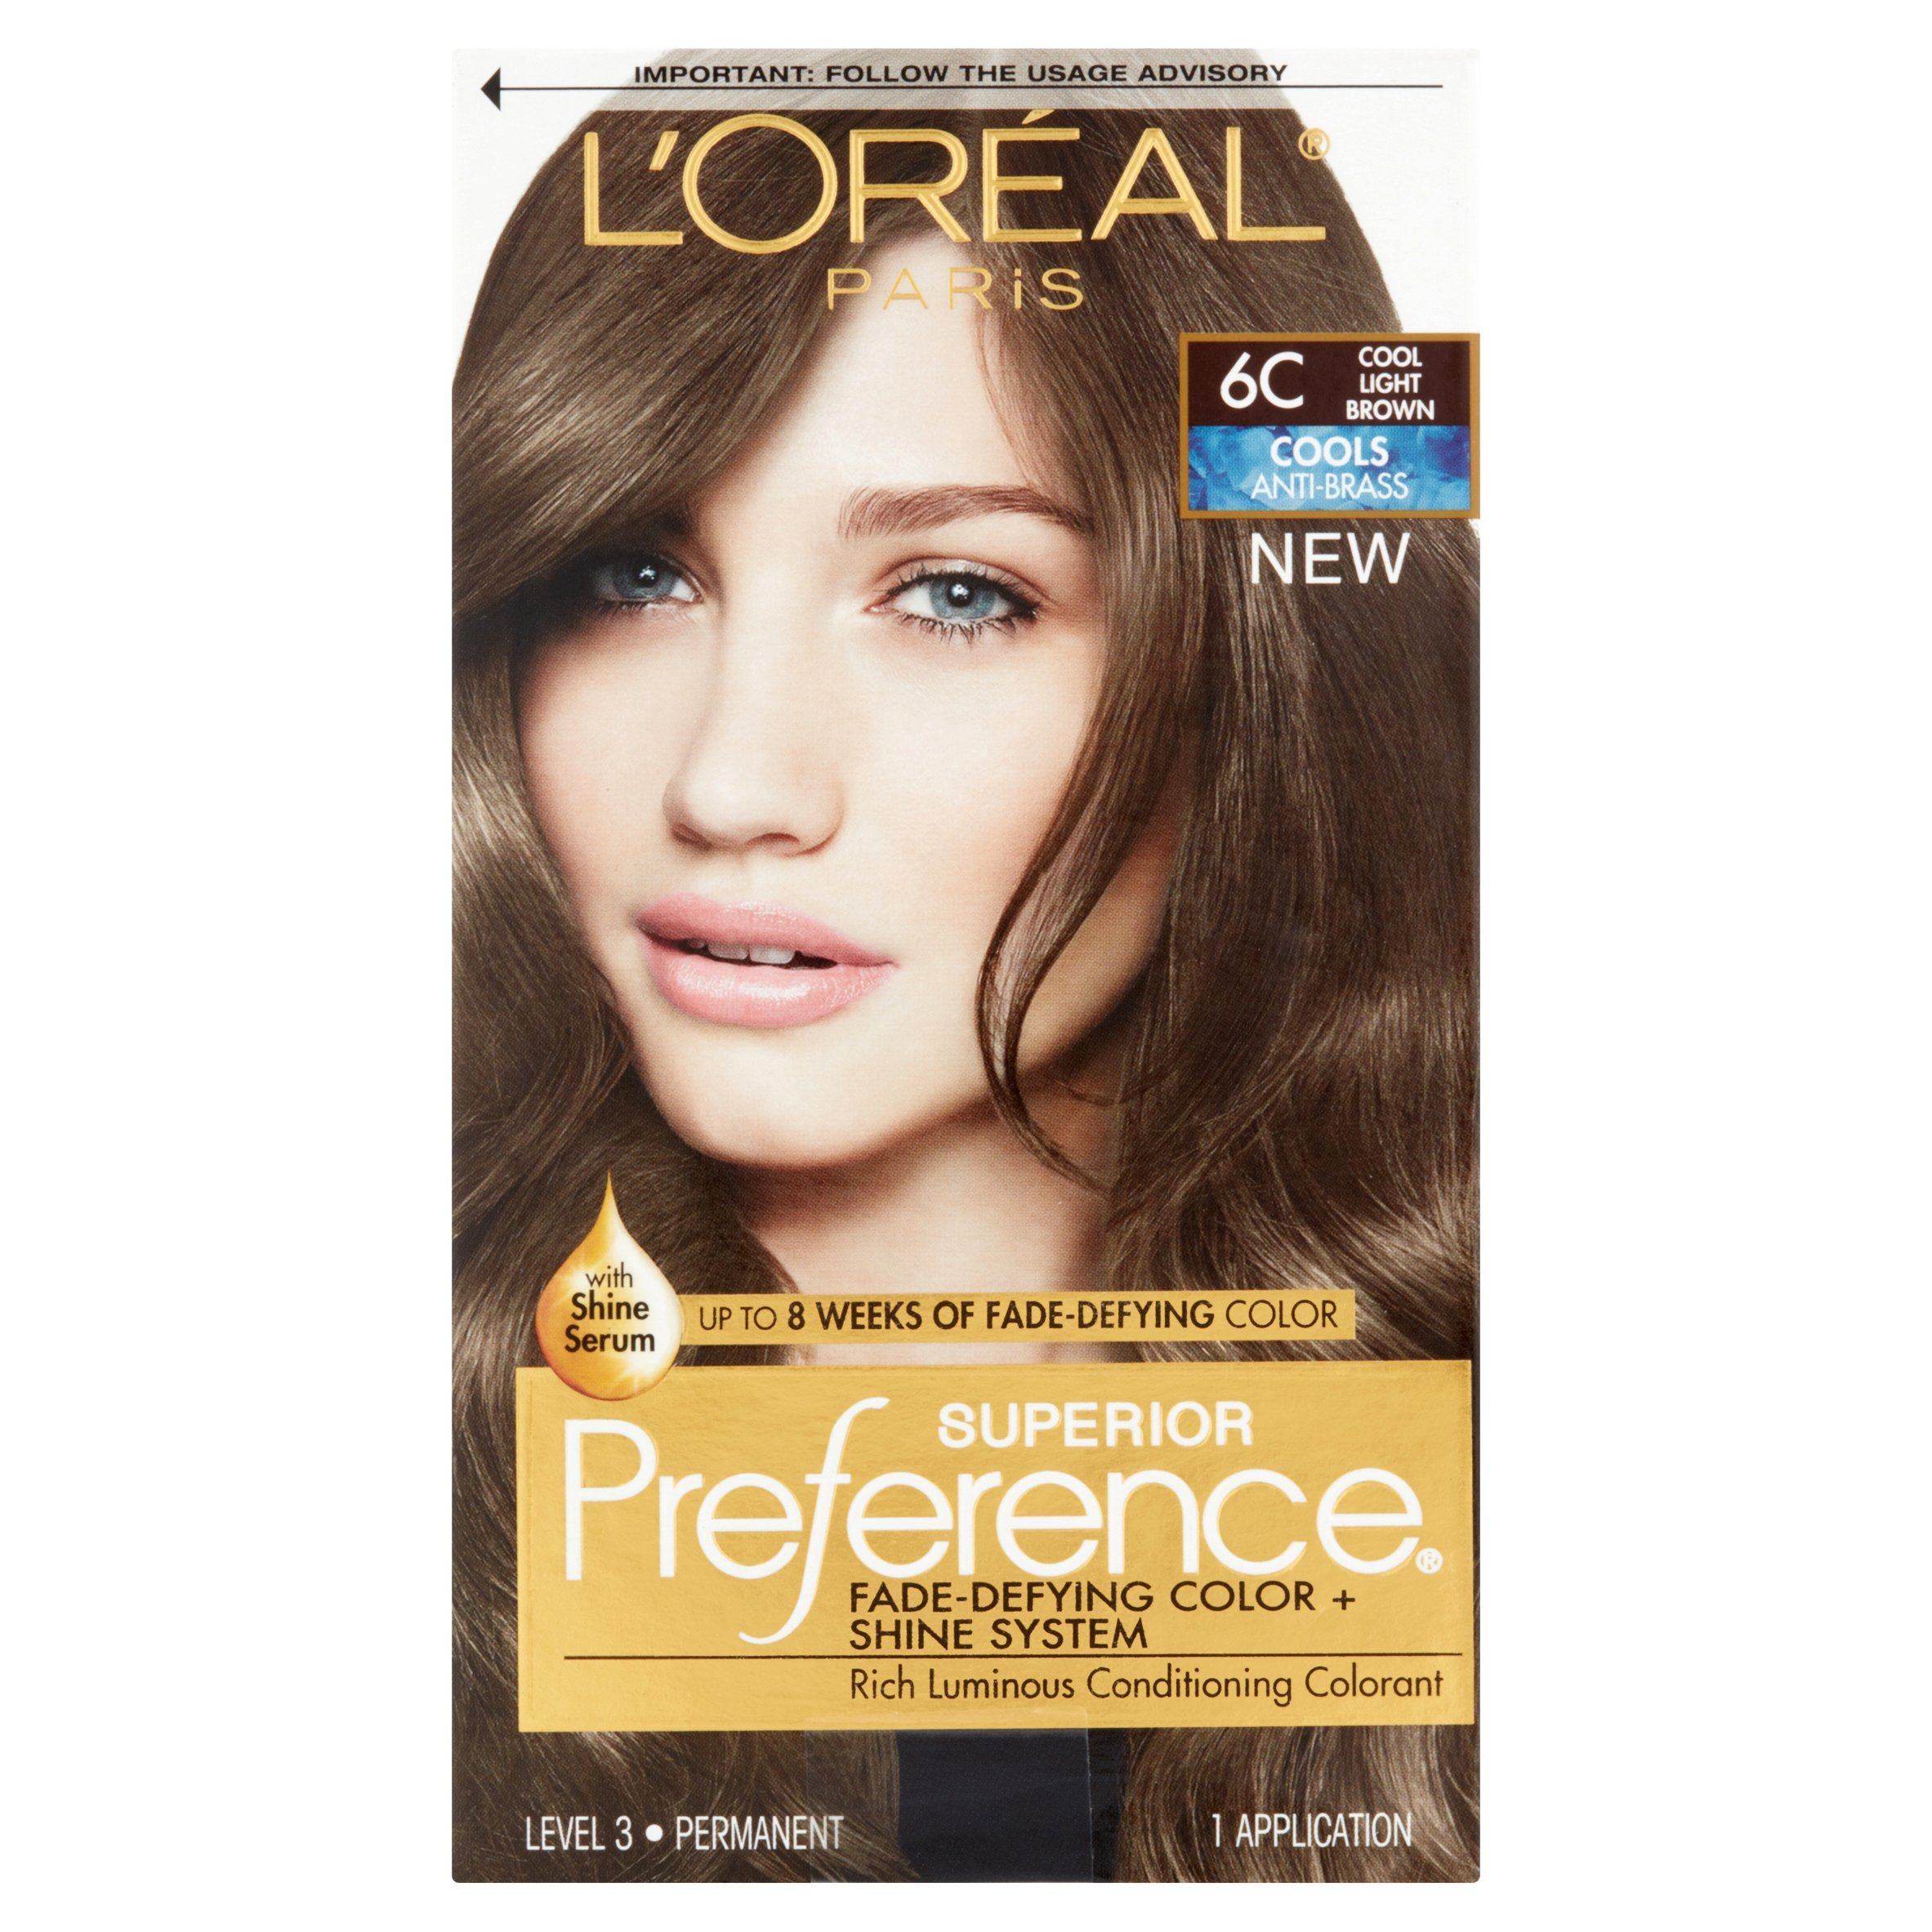 L'Oreal Paris Superior Preference Cools Anti-Brass Hair Color Kit, 6C Cool Light Brown